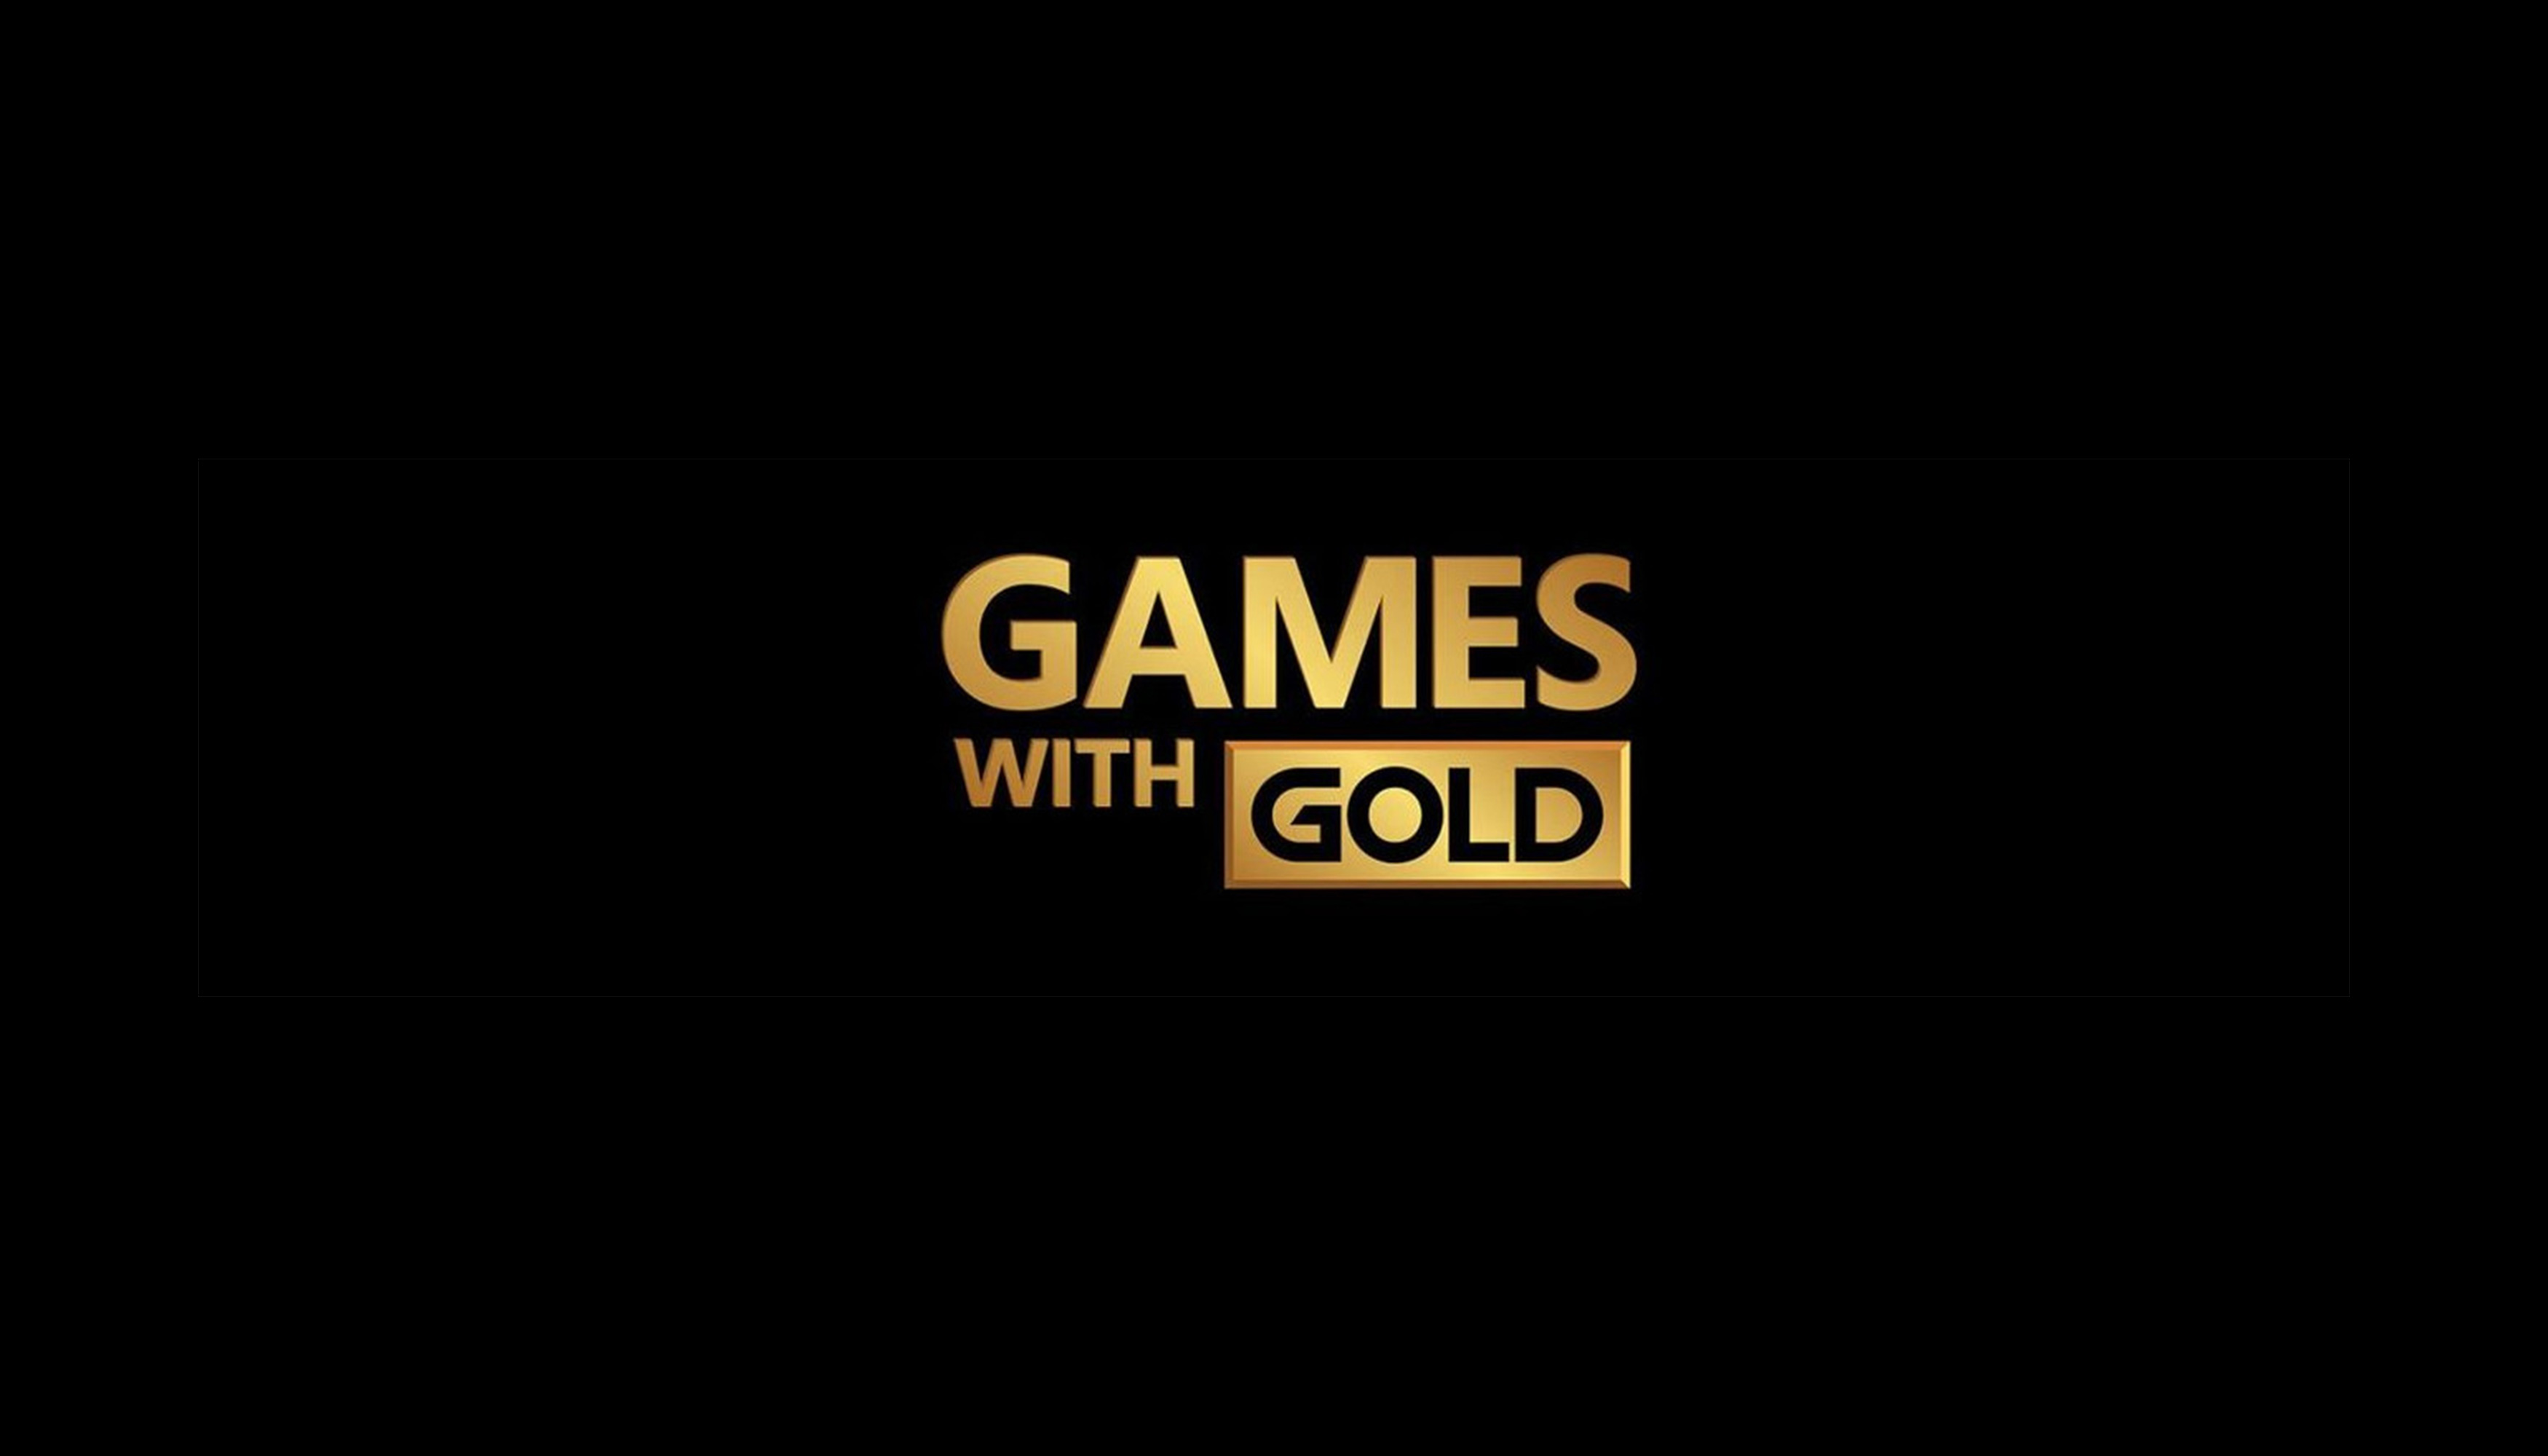 Games with Gold GWG Xbox